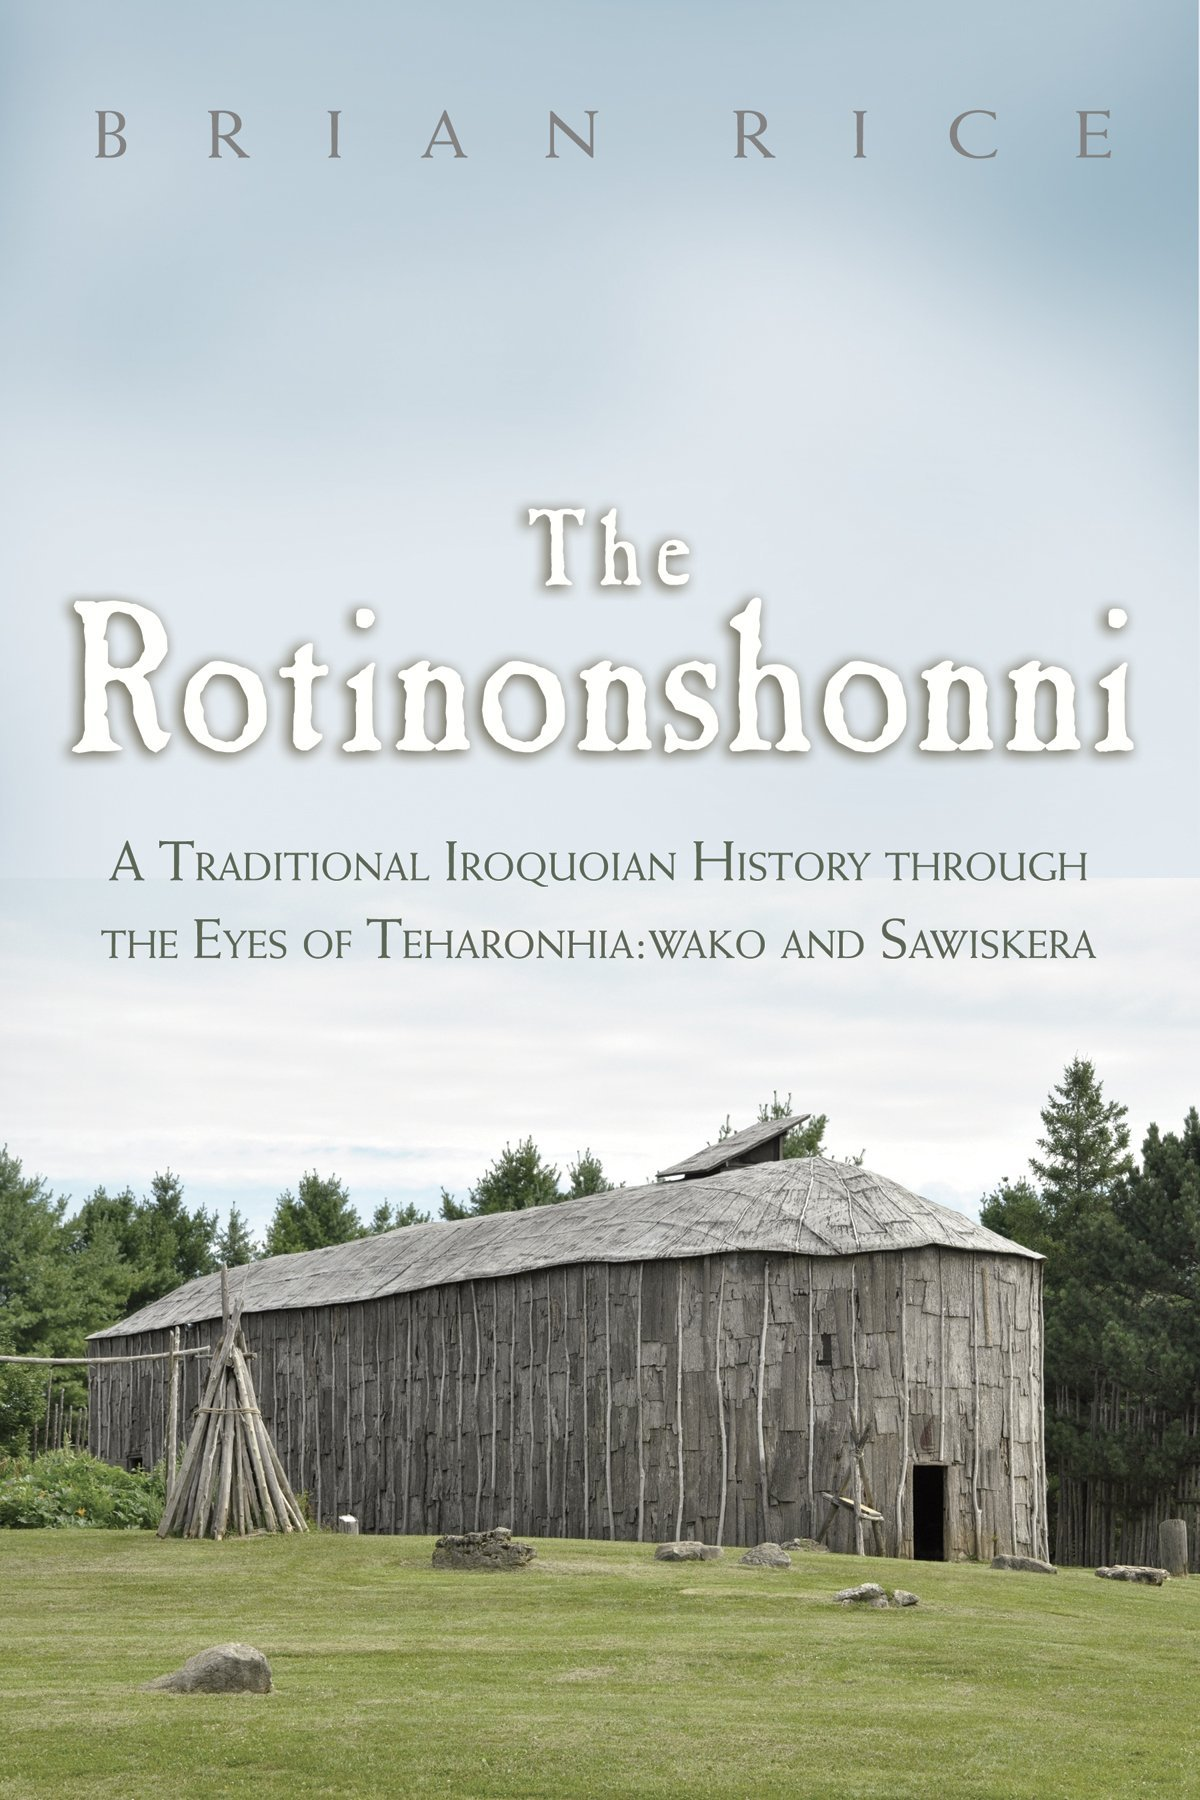 Social psychology fifth canadian edition plus new mylab psychology the rotinonshonni a traditional iroquoian history through the eyes of teharonhia wako and sawiskera fandeluxe Choice Image